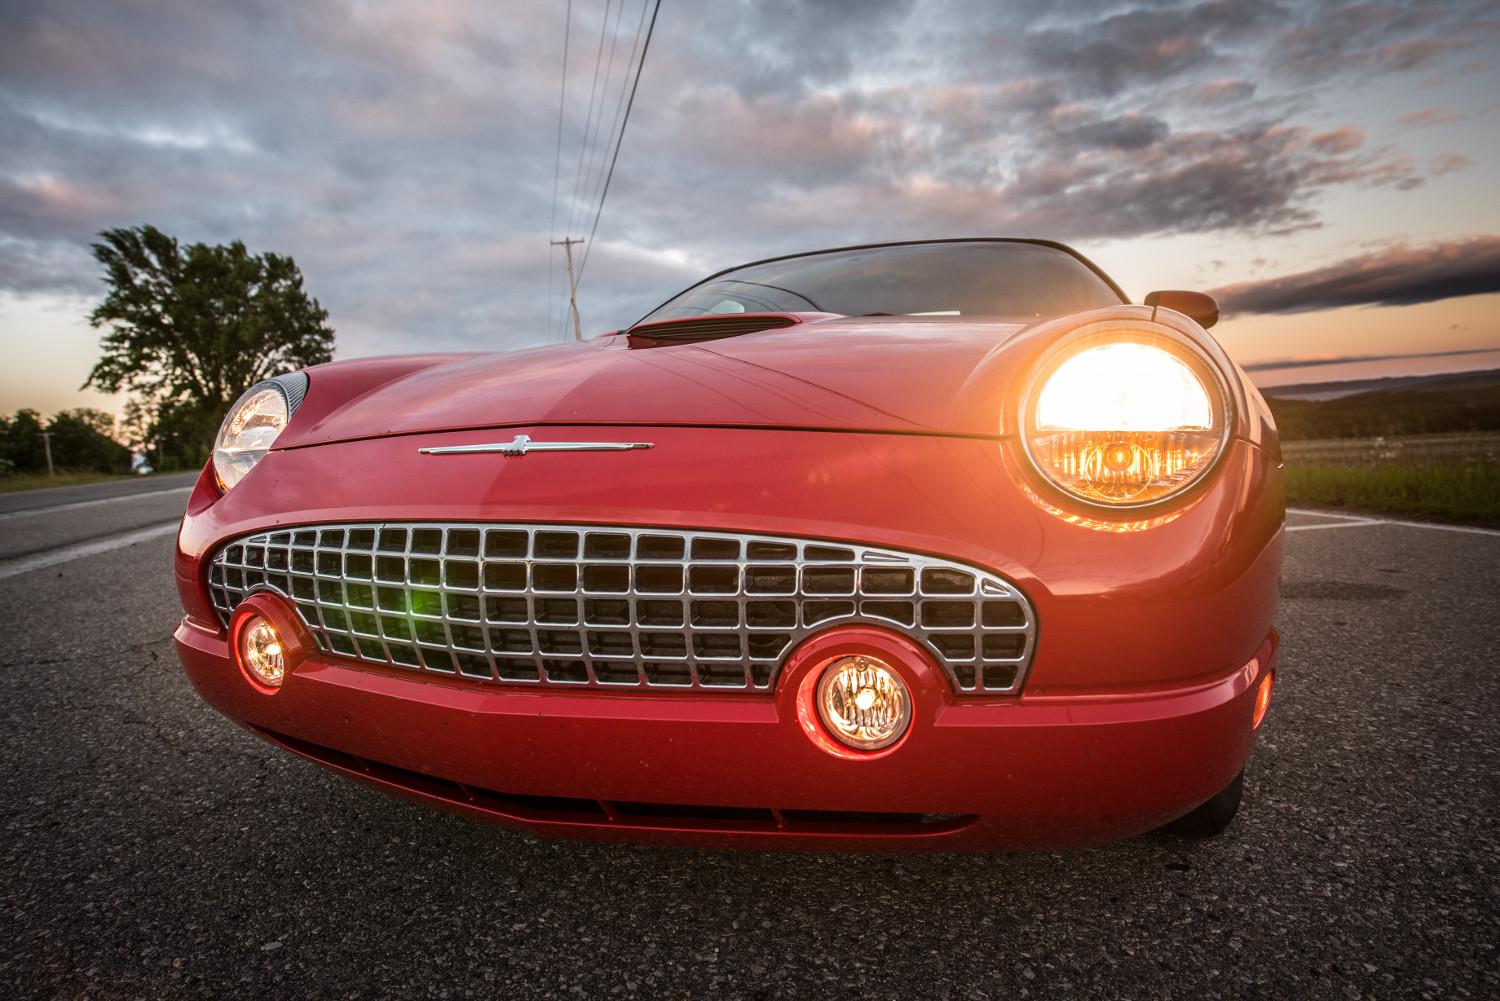 2002 Ford Thunderbird nose